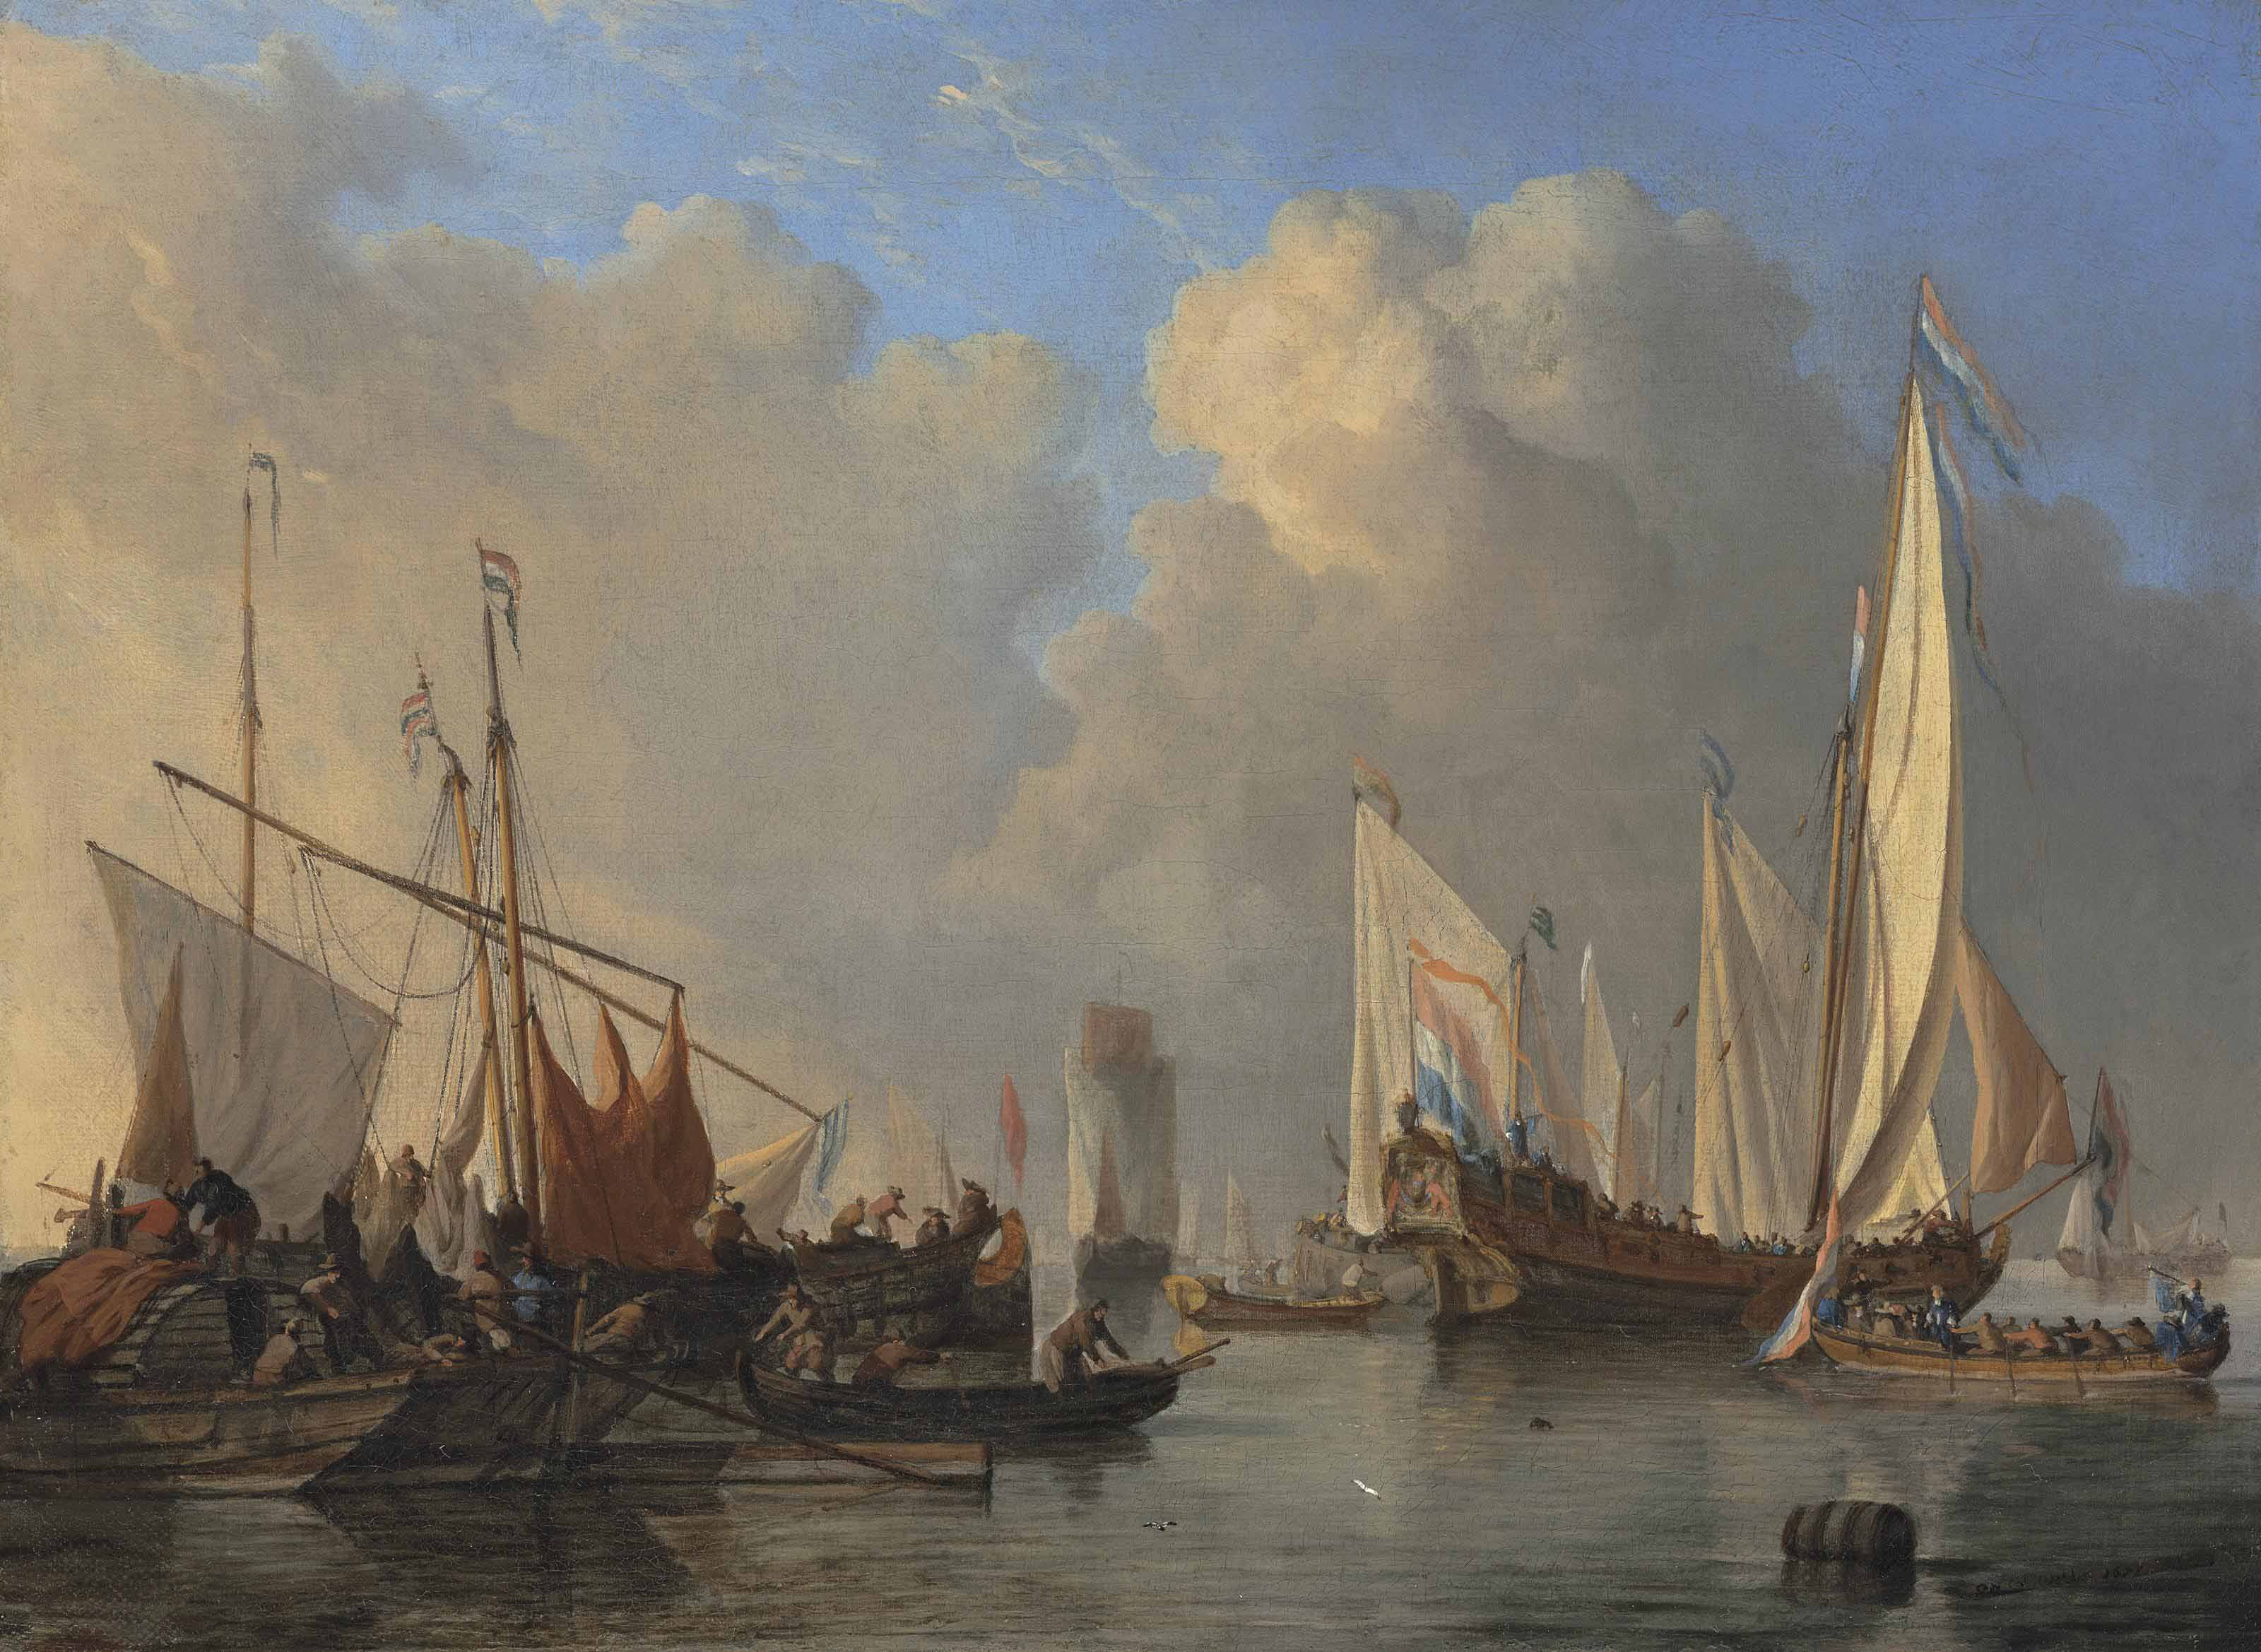 A Dutch States Yacht, a smalschip, a Rhine aak and other vessels in a calm